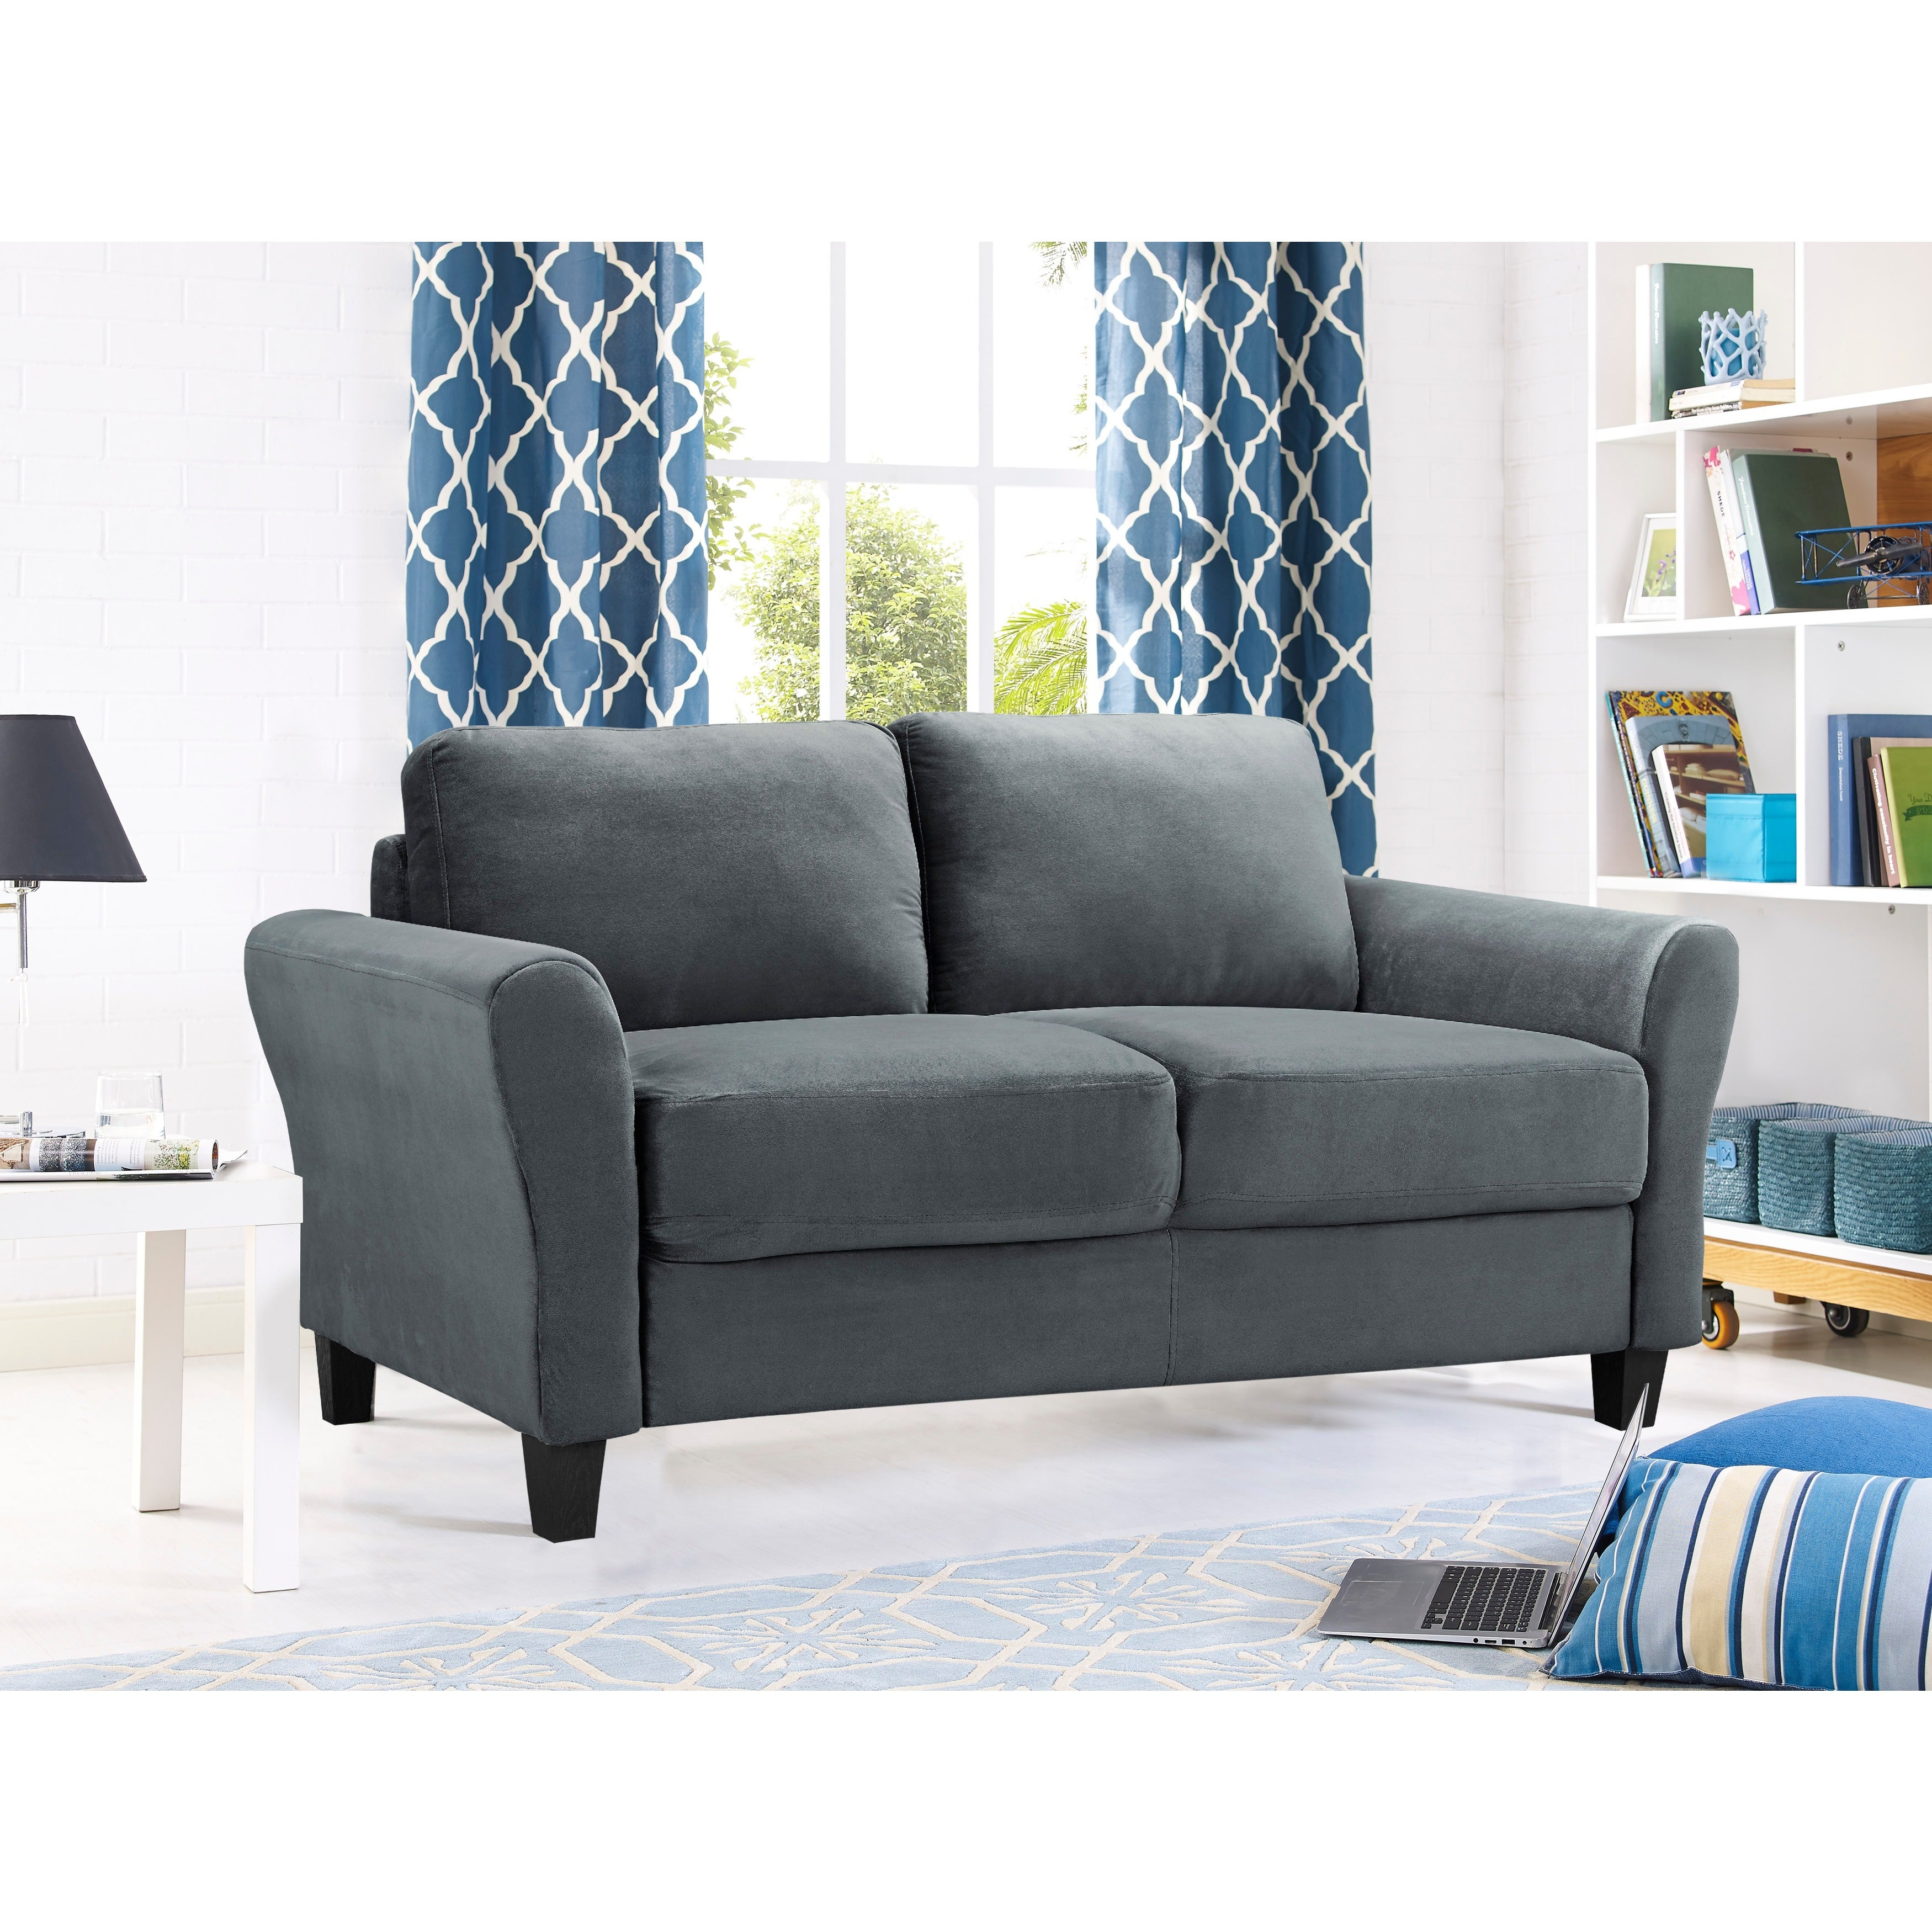 style loveseat lucas sofas jaymar collection causeuse platinum contemporary loveseats